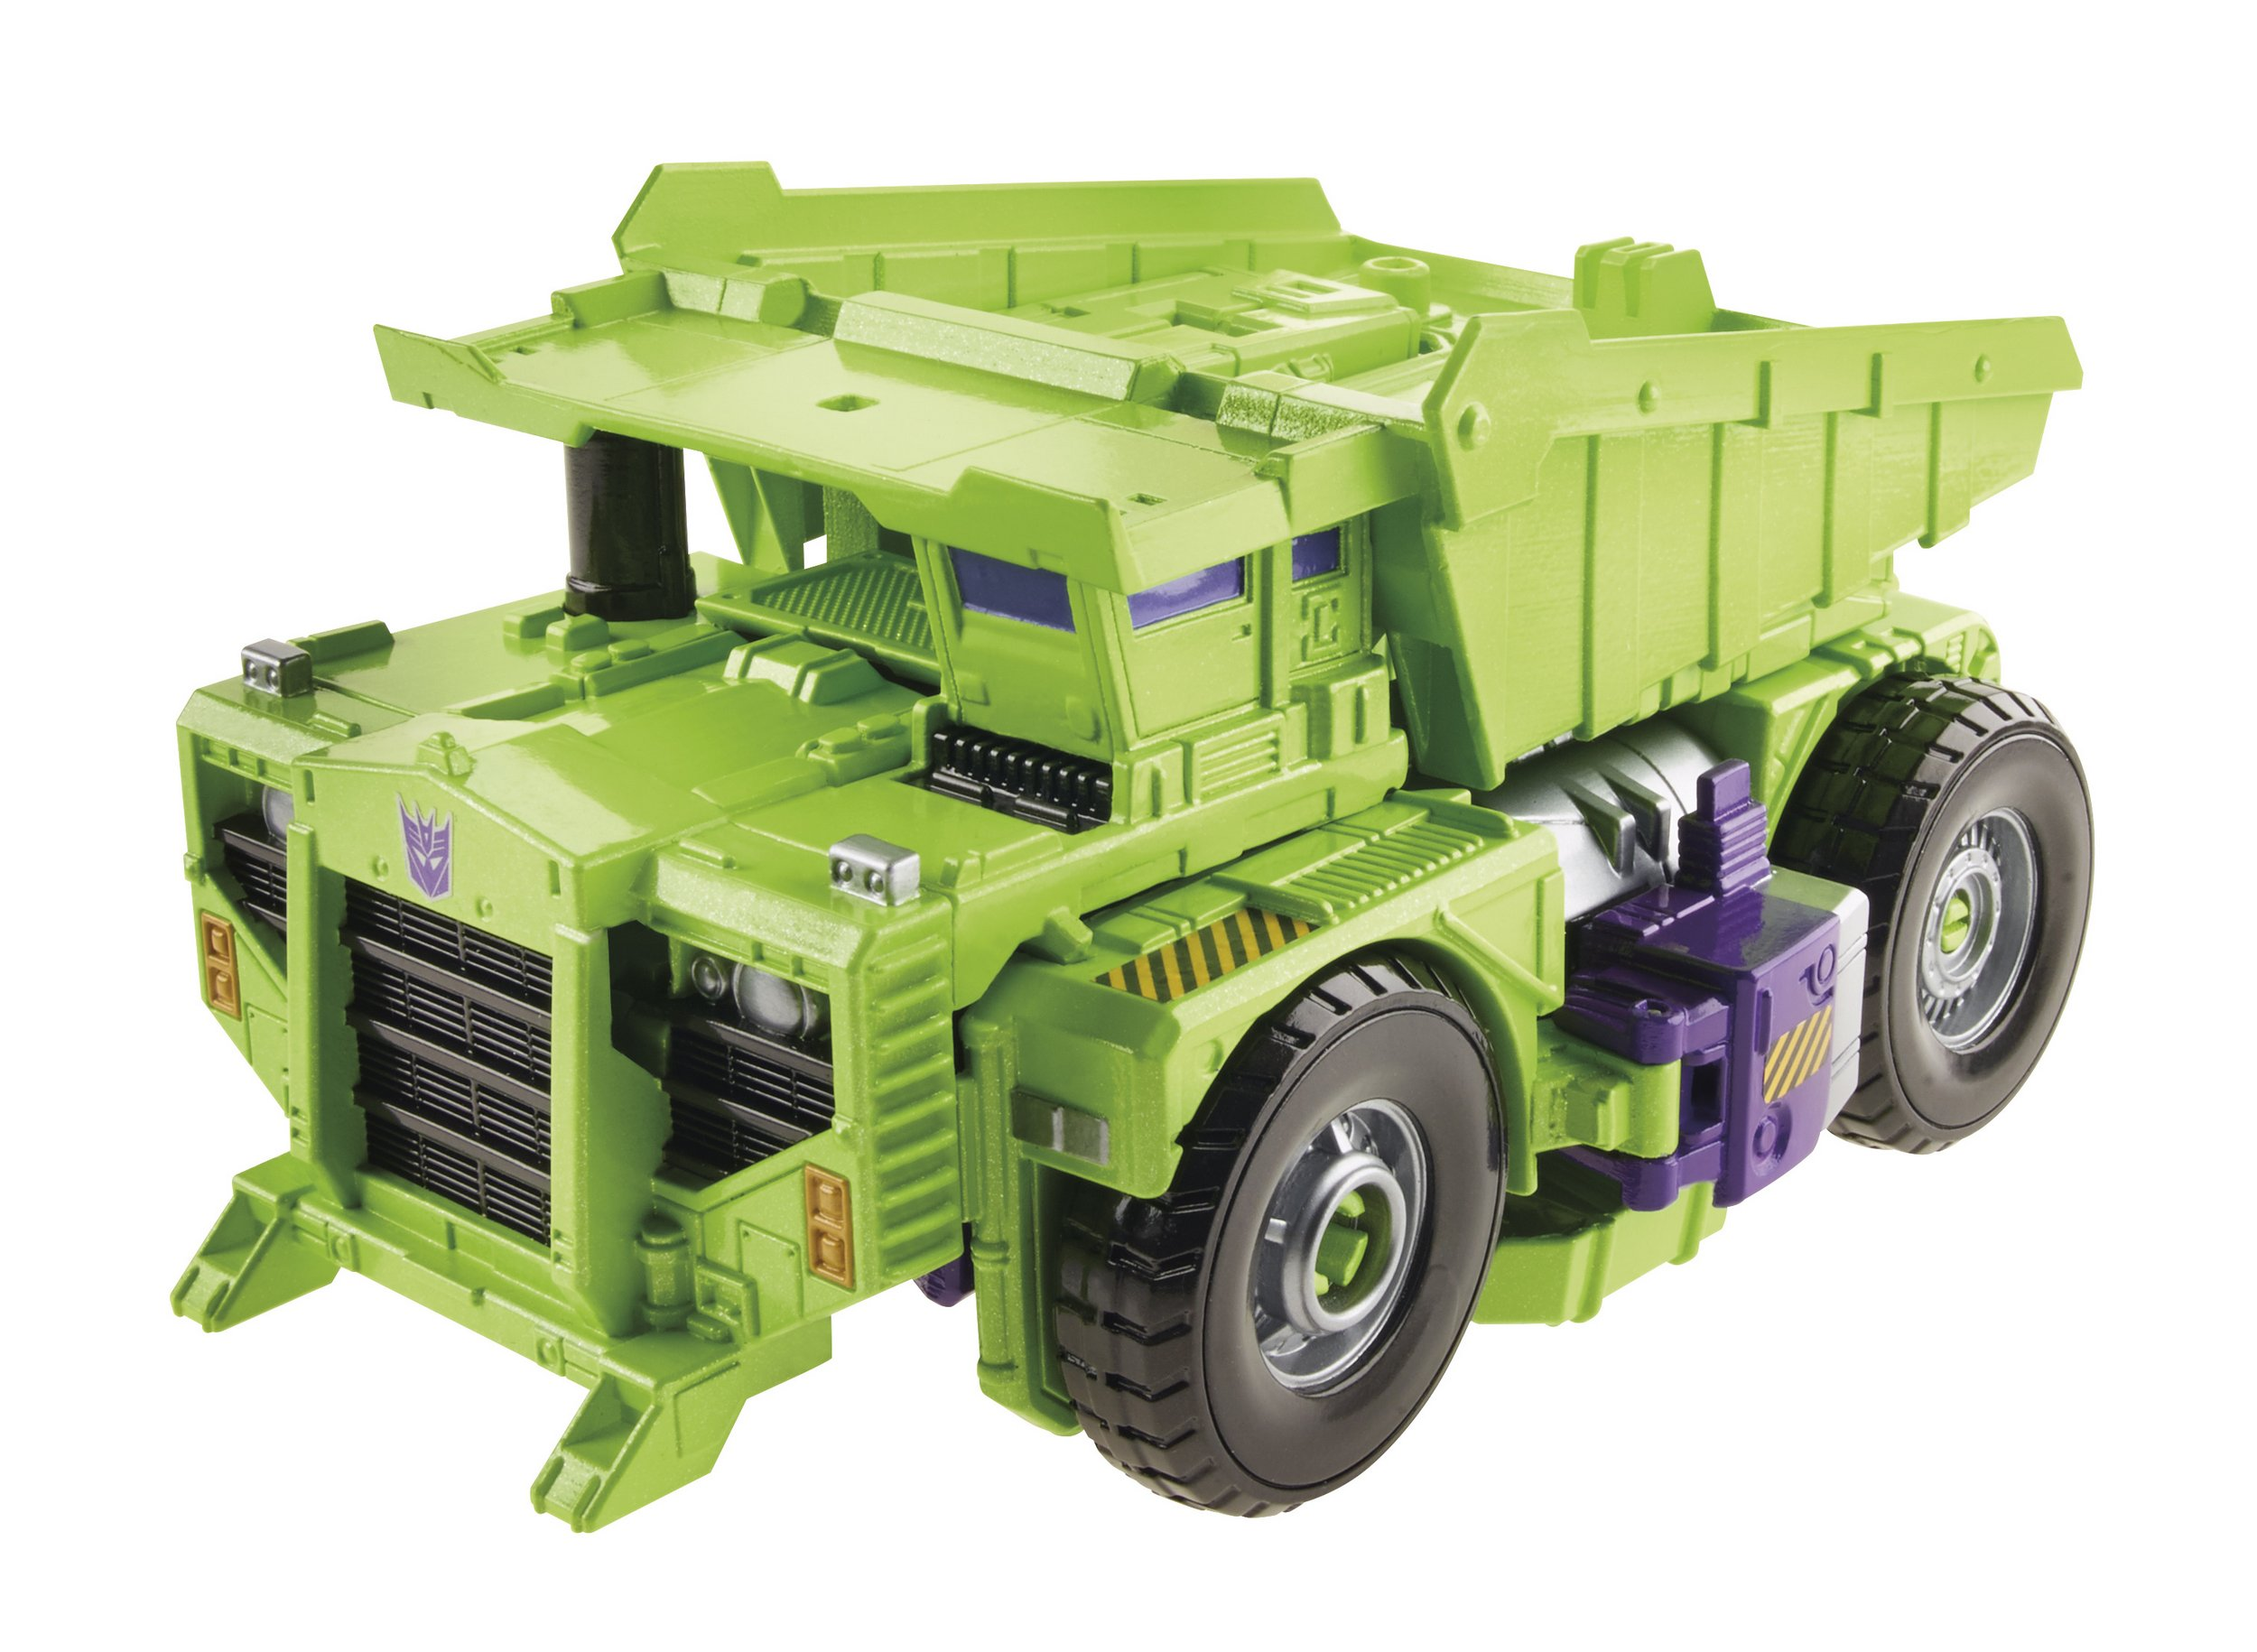 Constructicon-Long-Haul-Vehicle_1434047846.jpg